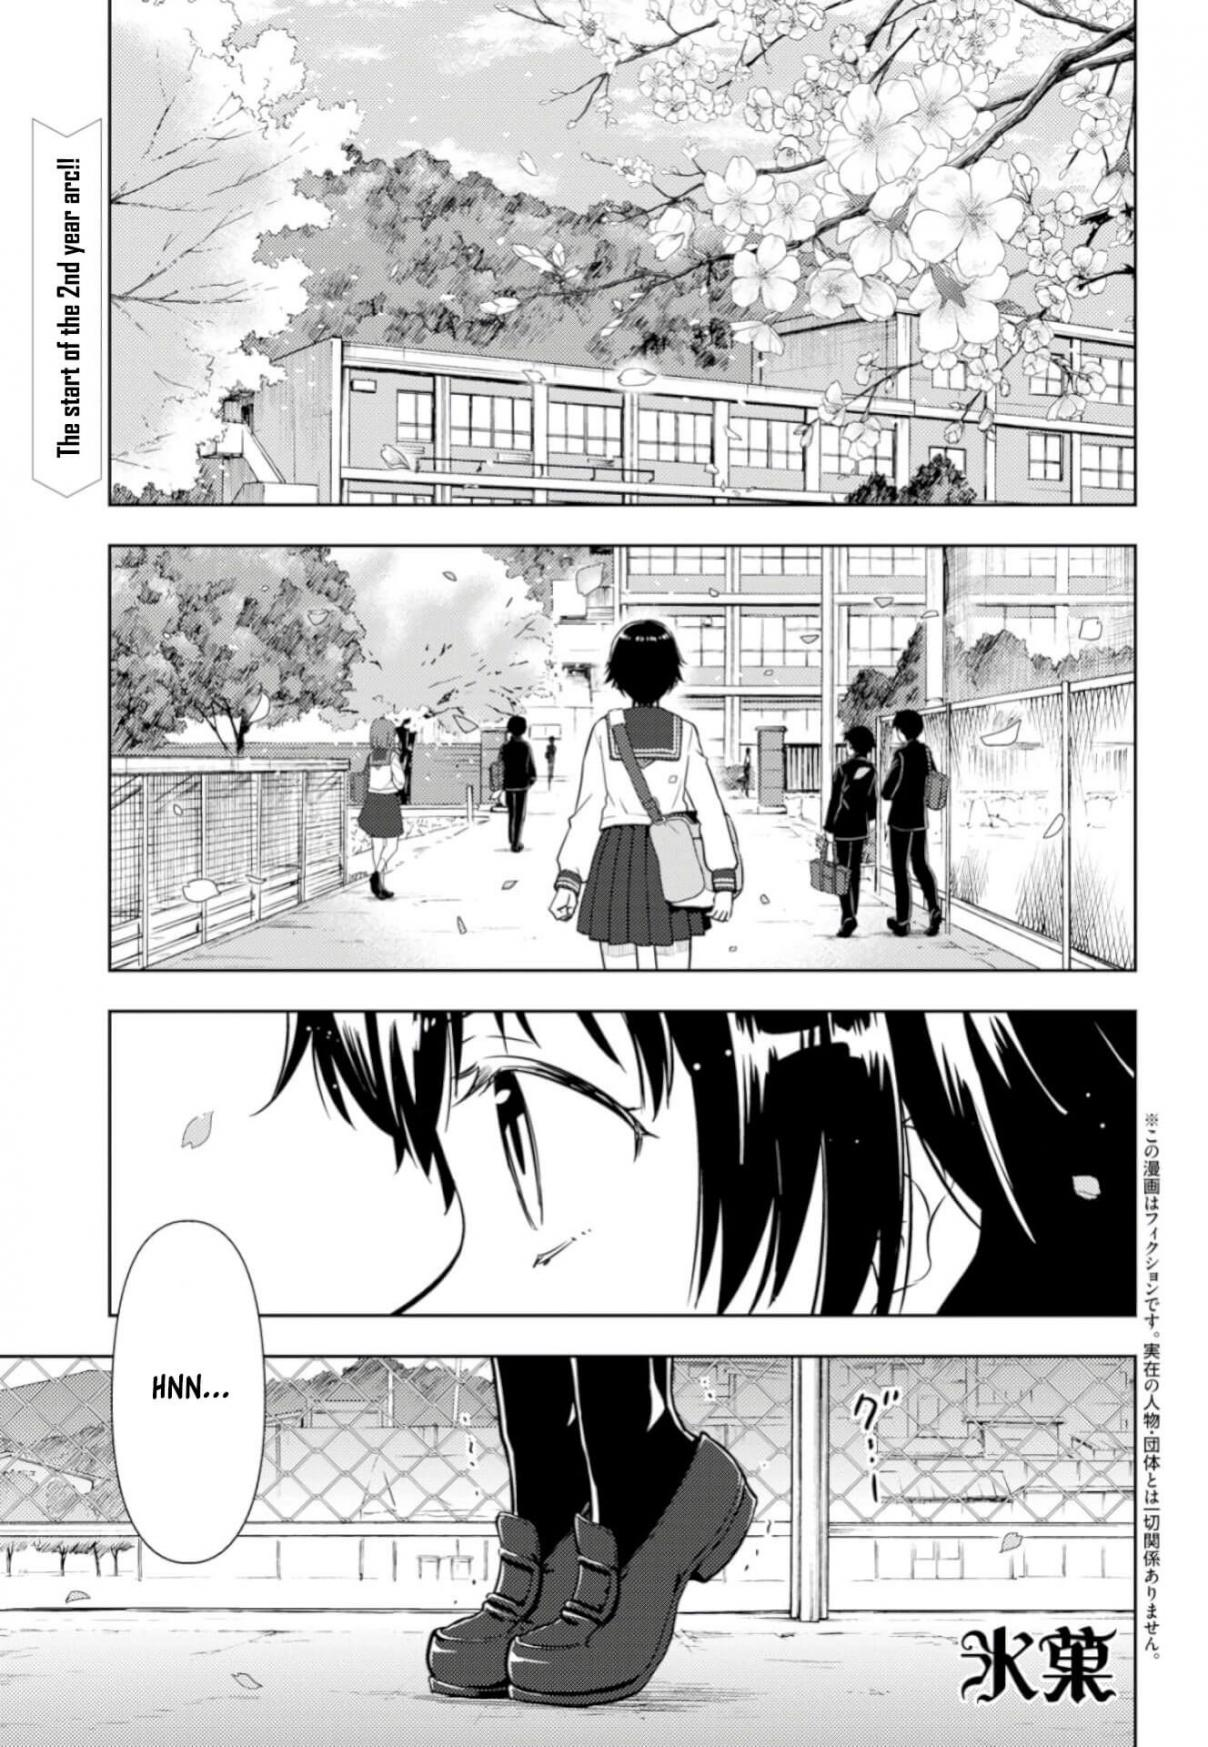 Hyouka Ch. 76 Club Applications Right Over Here! ①